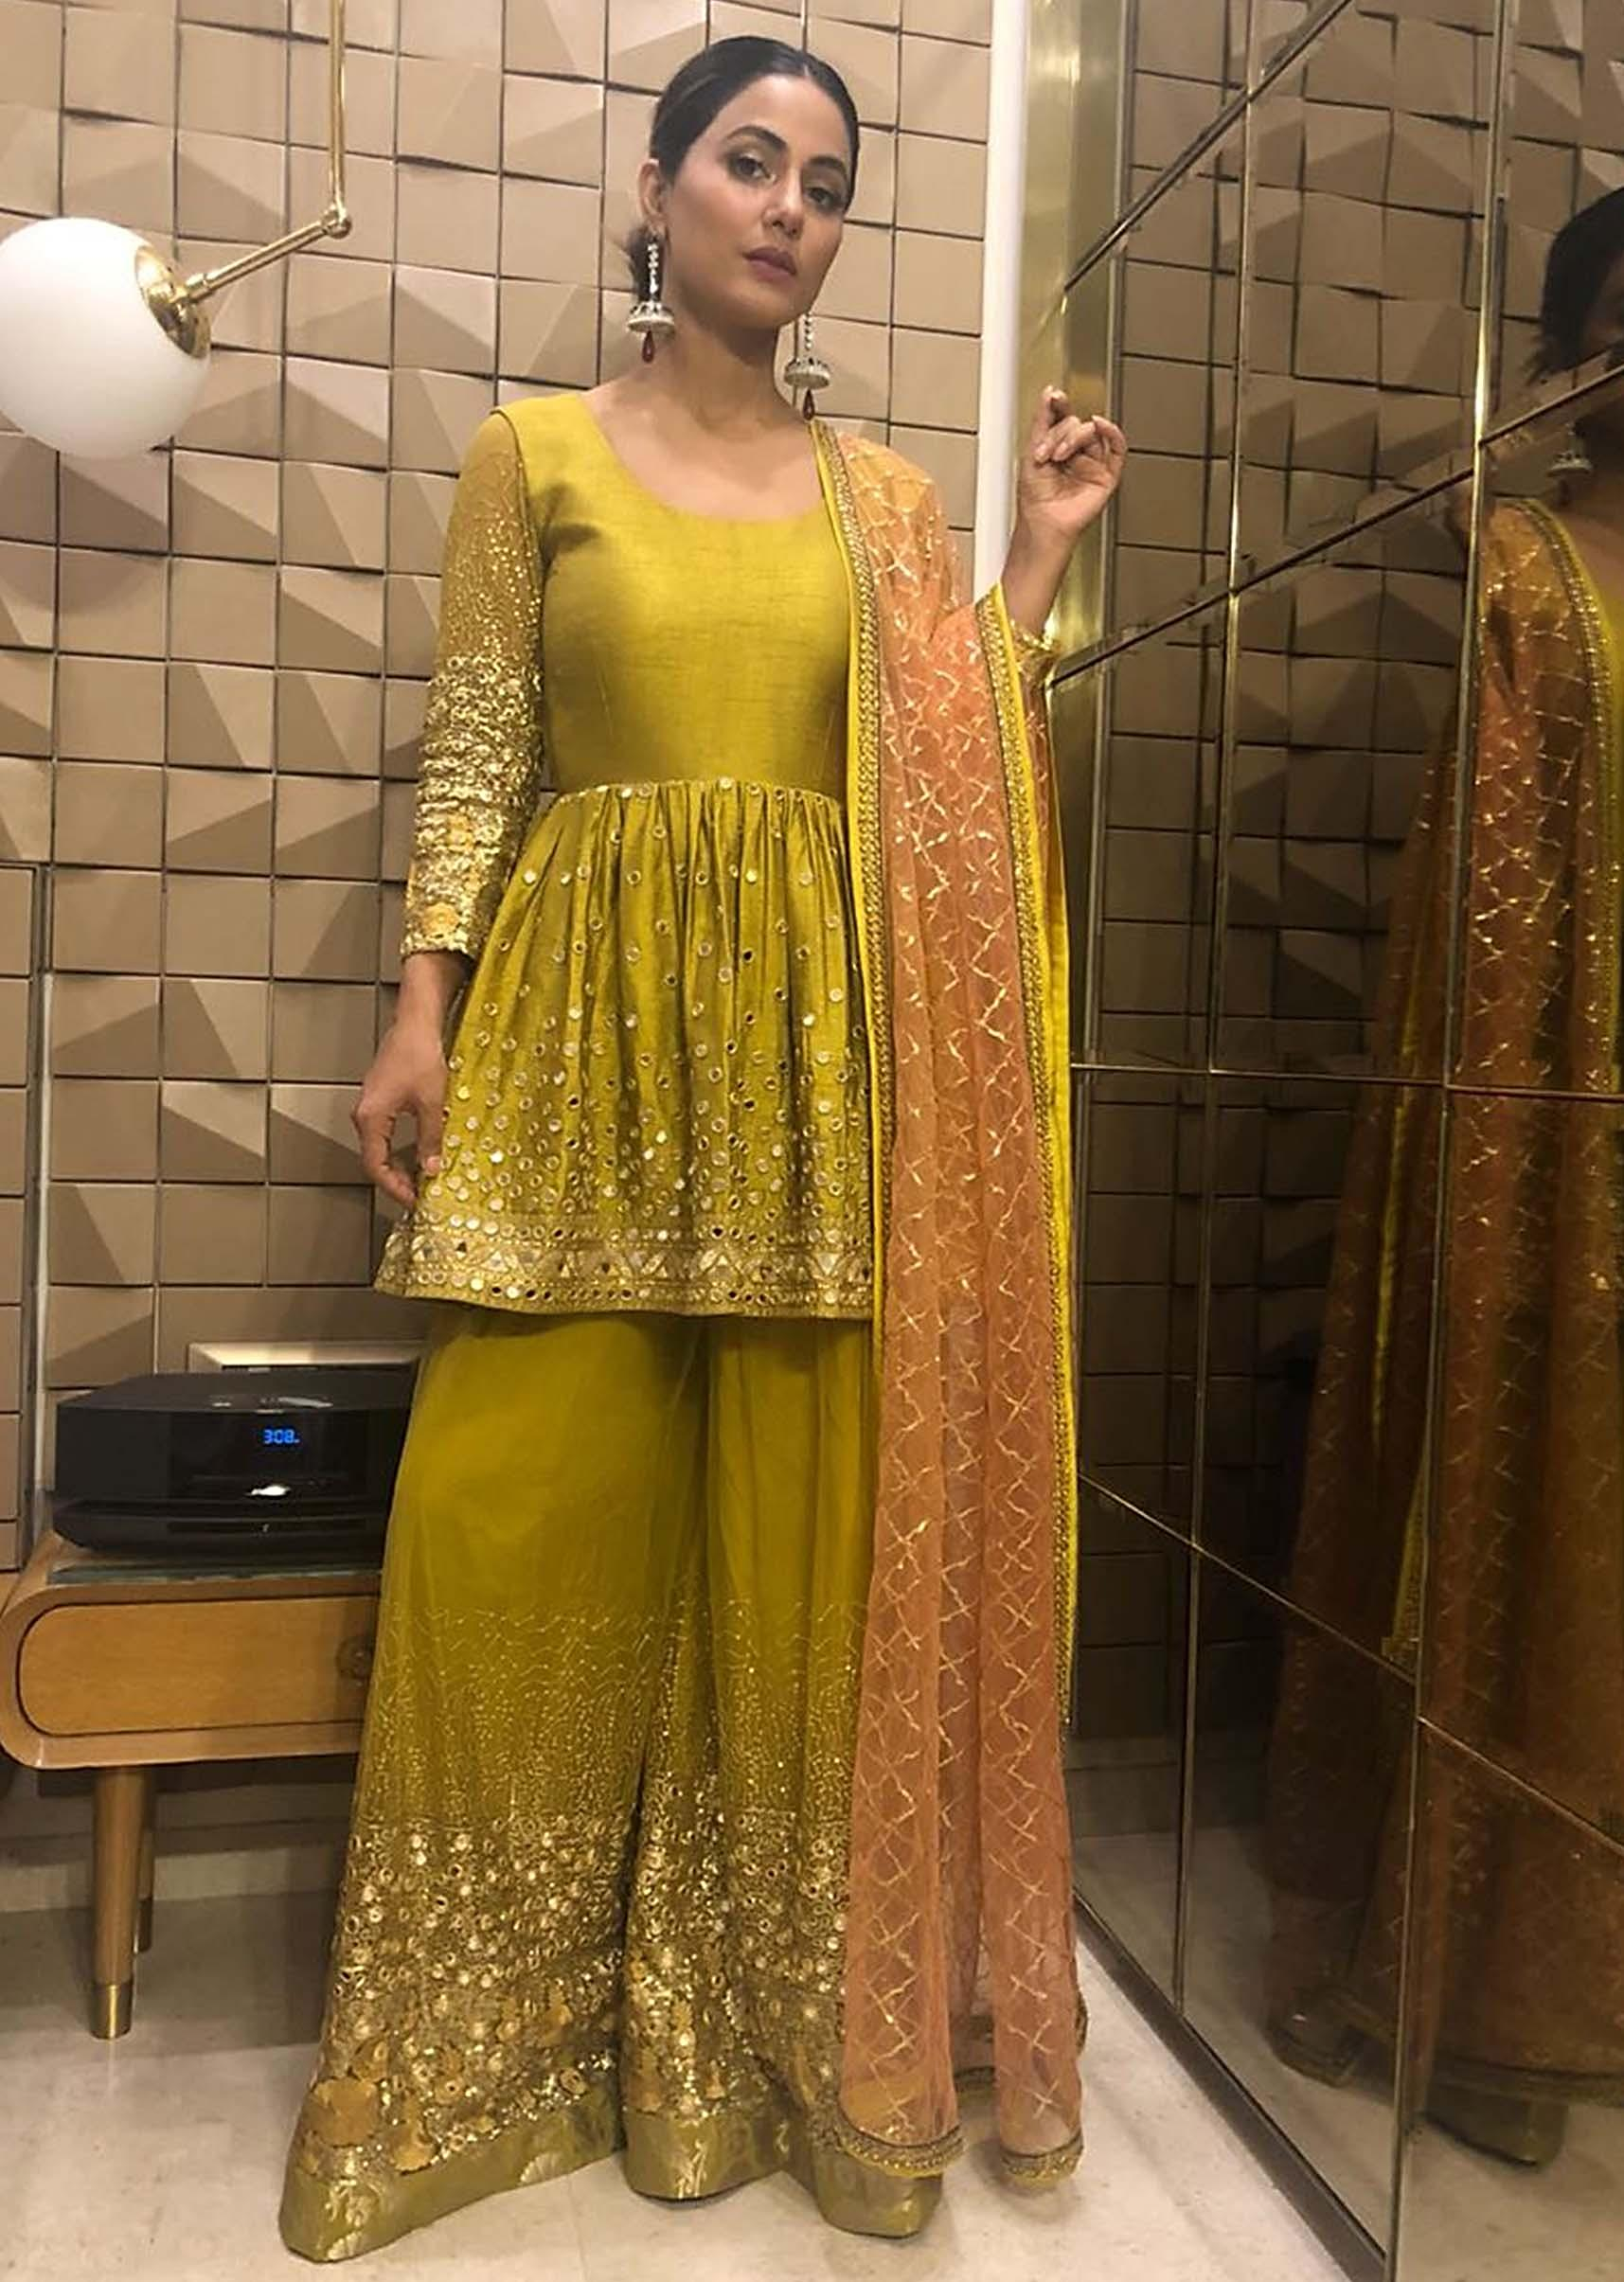 7a9f38d737 Hina Khan in Kalki mirror embroidered suit and sharara with contrasting  peach net dupatta